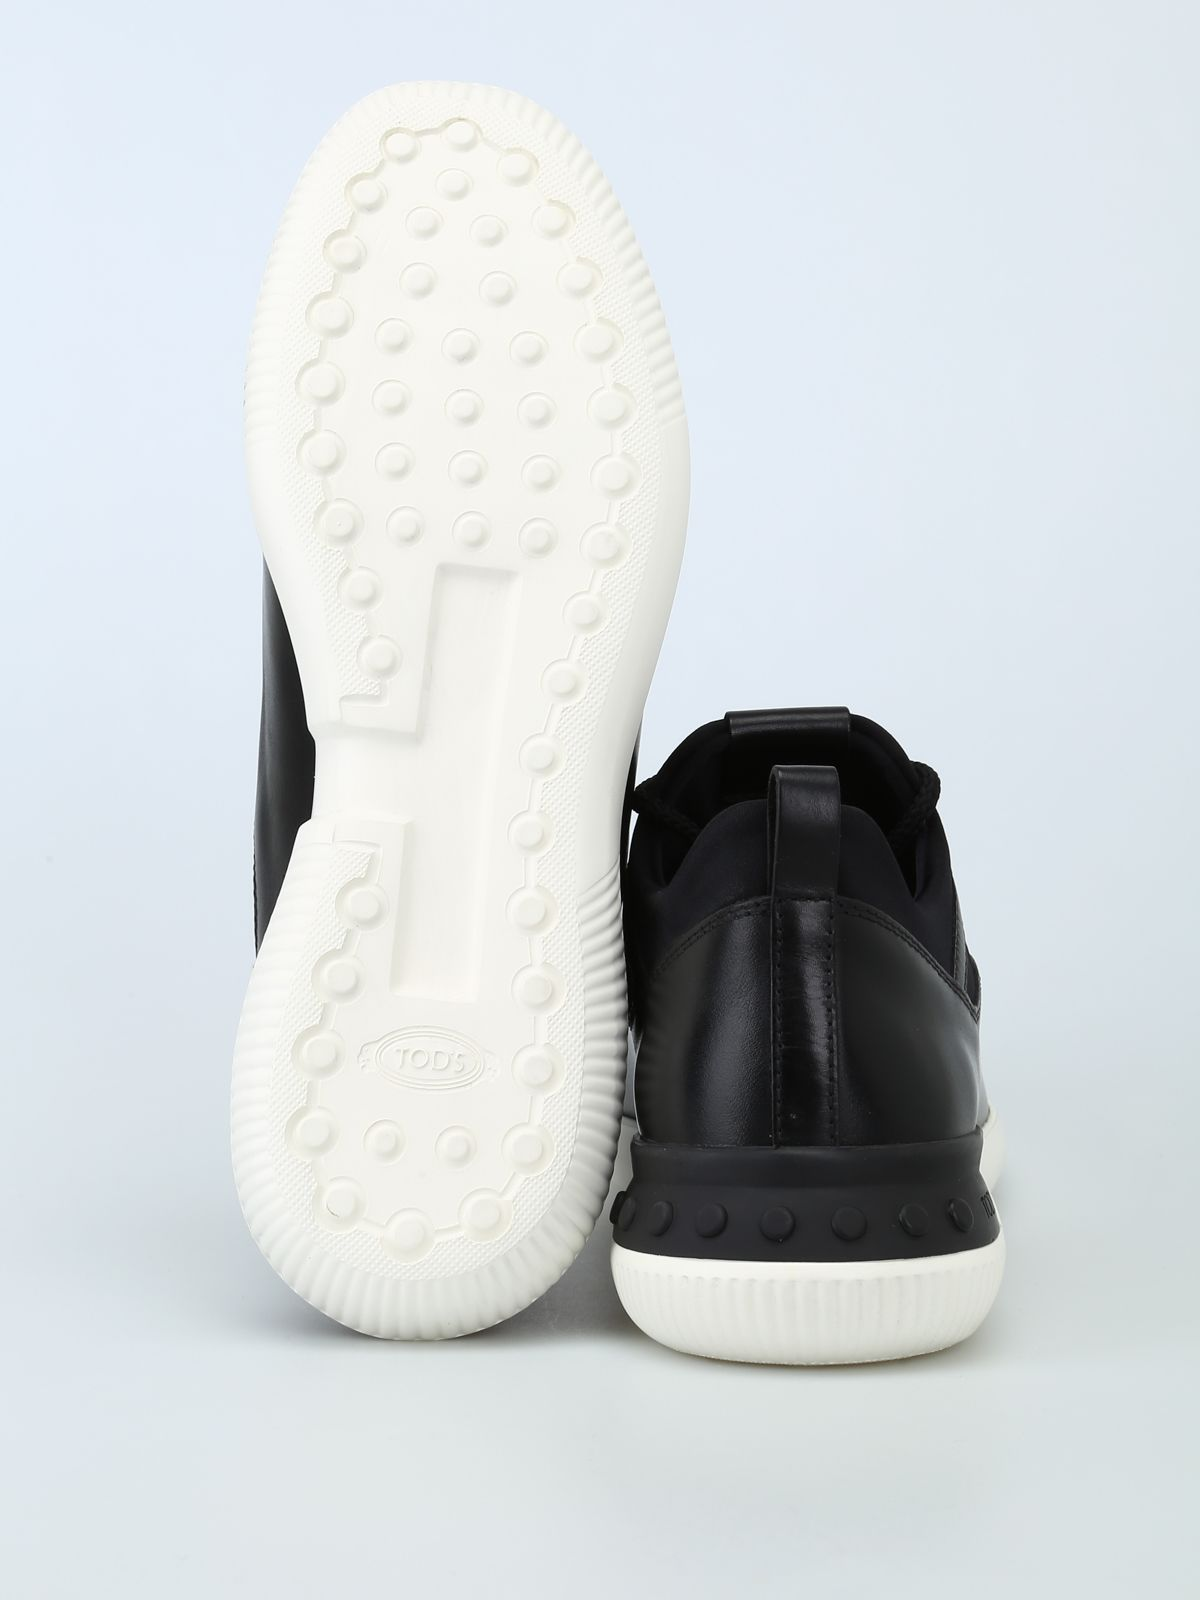 a86a24e6b6c010 ... Tod s No-code Sneakers In Leather And Scuba-effect Fabric - Black